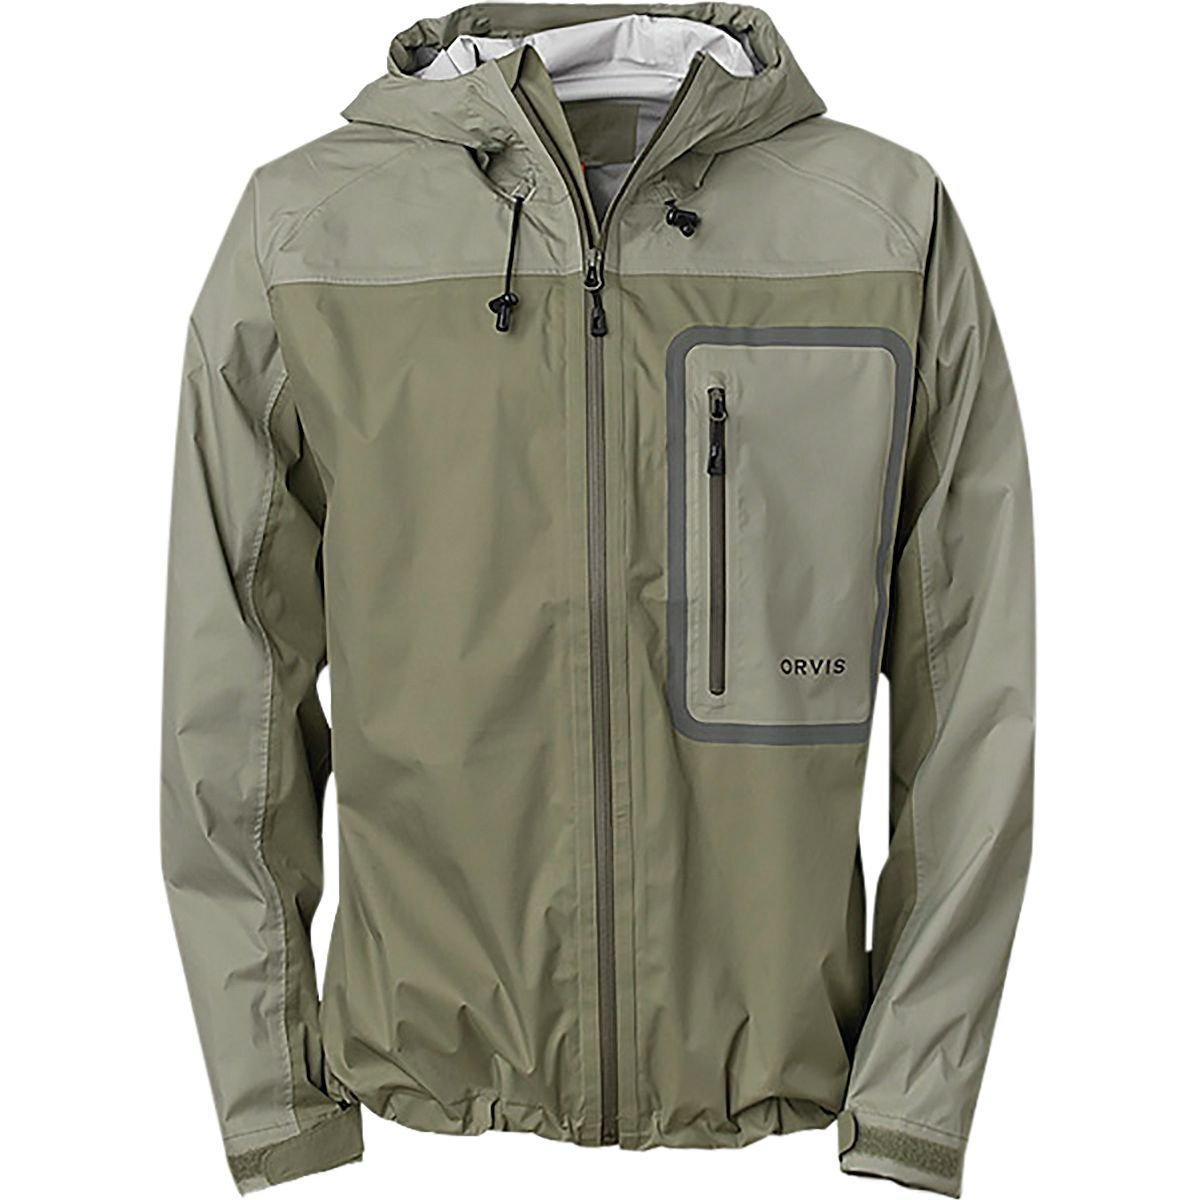 【期間限定特価】 オービスEncounter Jacket – Men 's B06Y4B27N4 Medium|Sage B06Y4B27N4 Multi Multi Men Sage Multi Medium, どら屋:1761abef --- ballyshannonshow.com